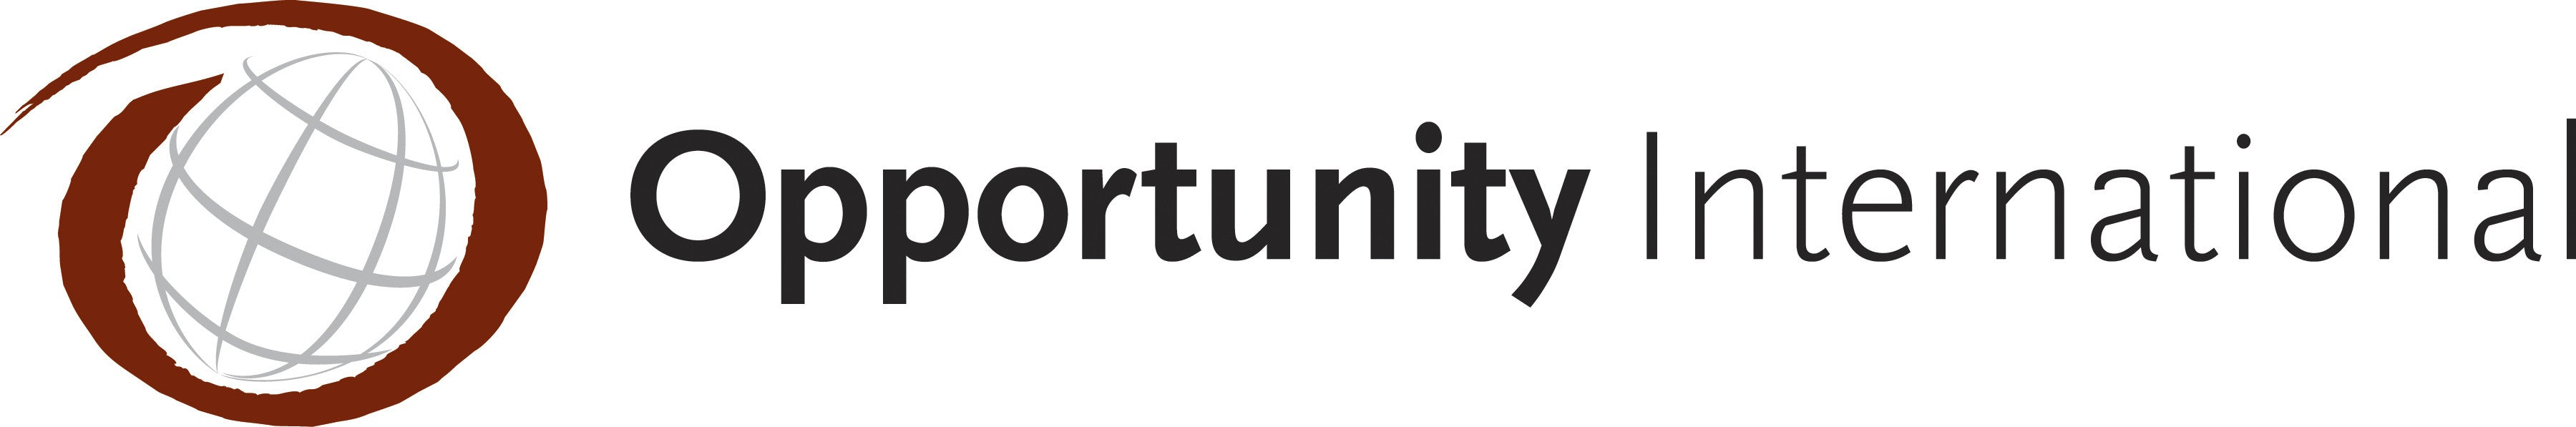 Opportunity International logo